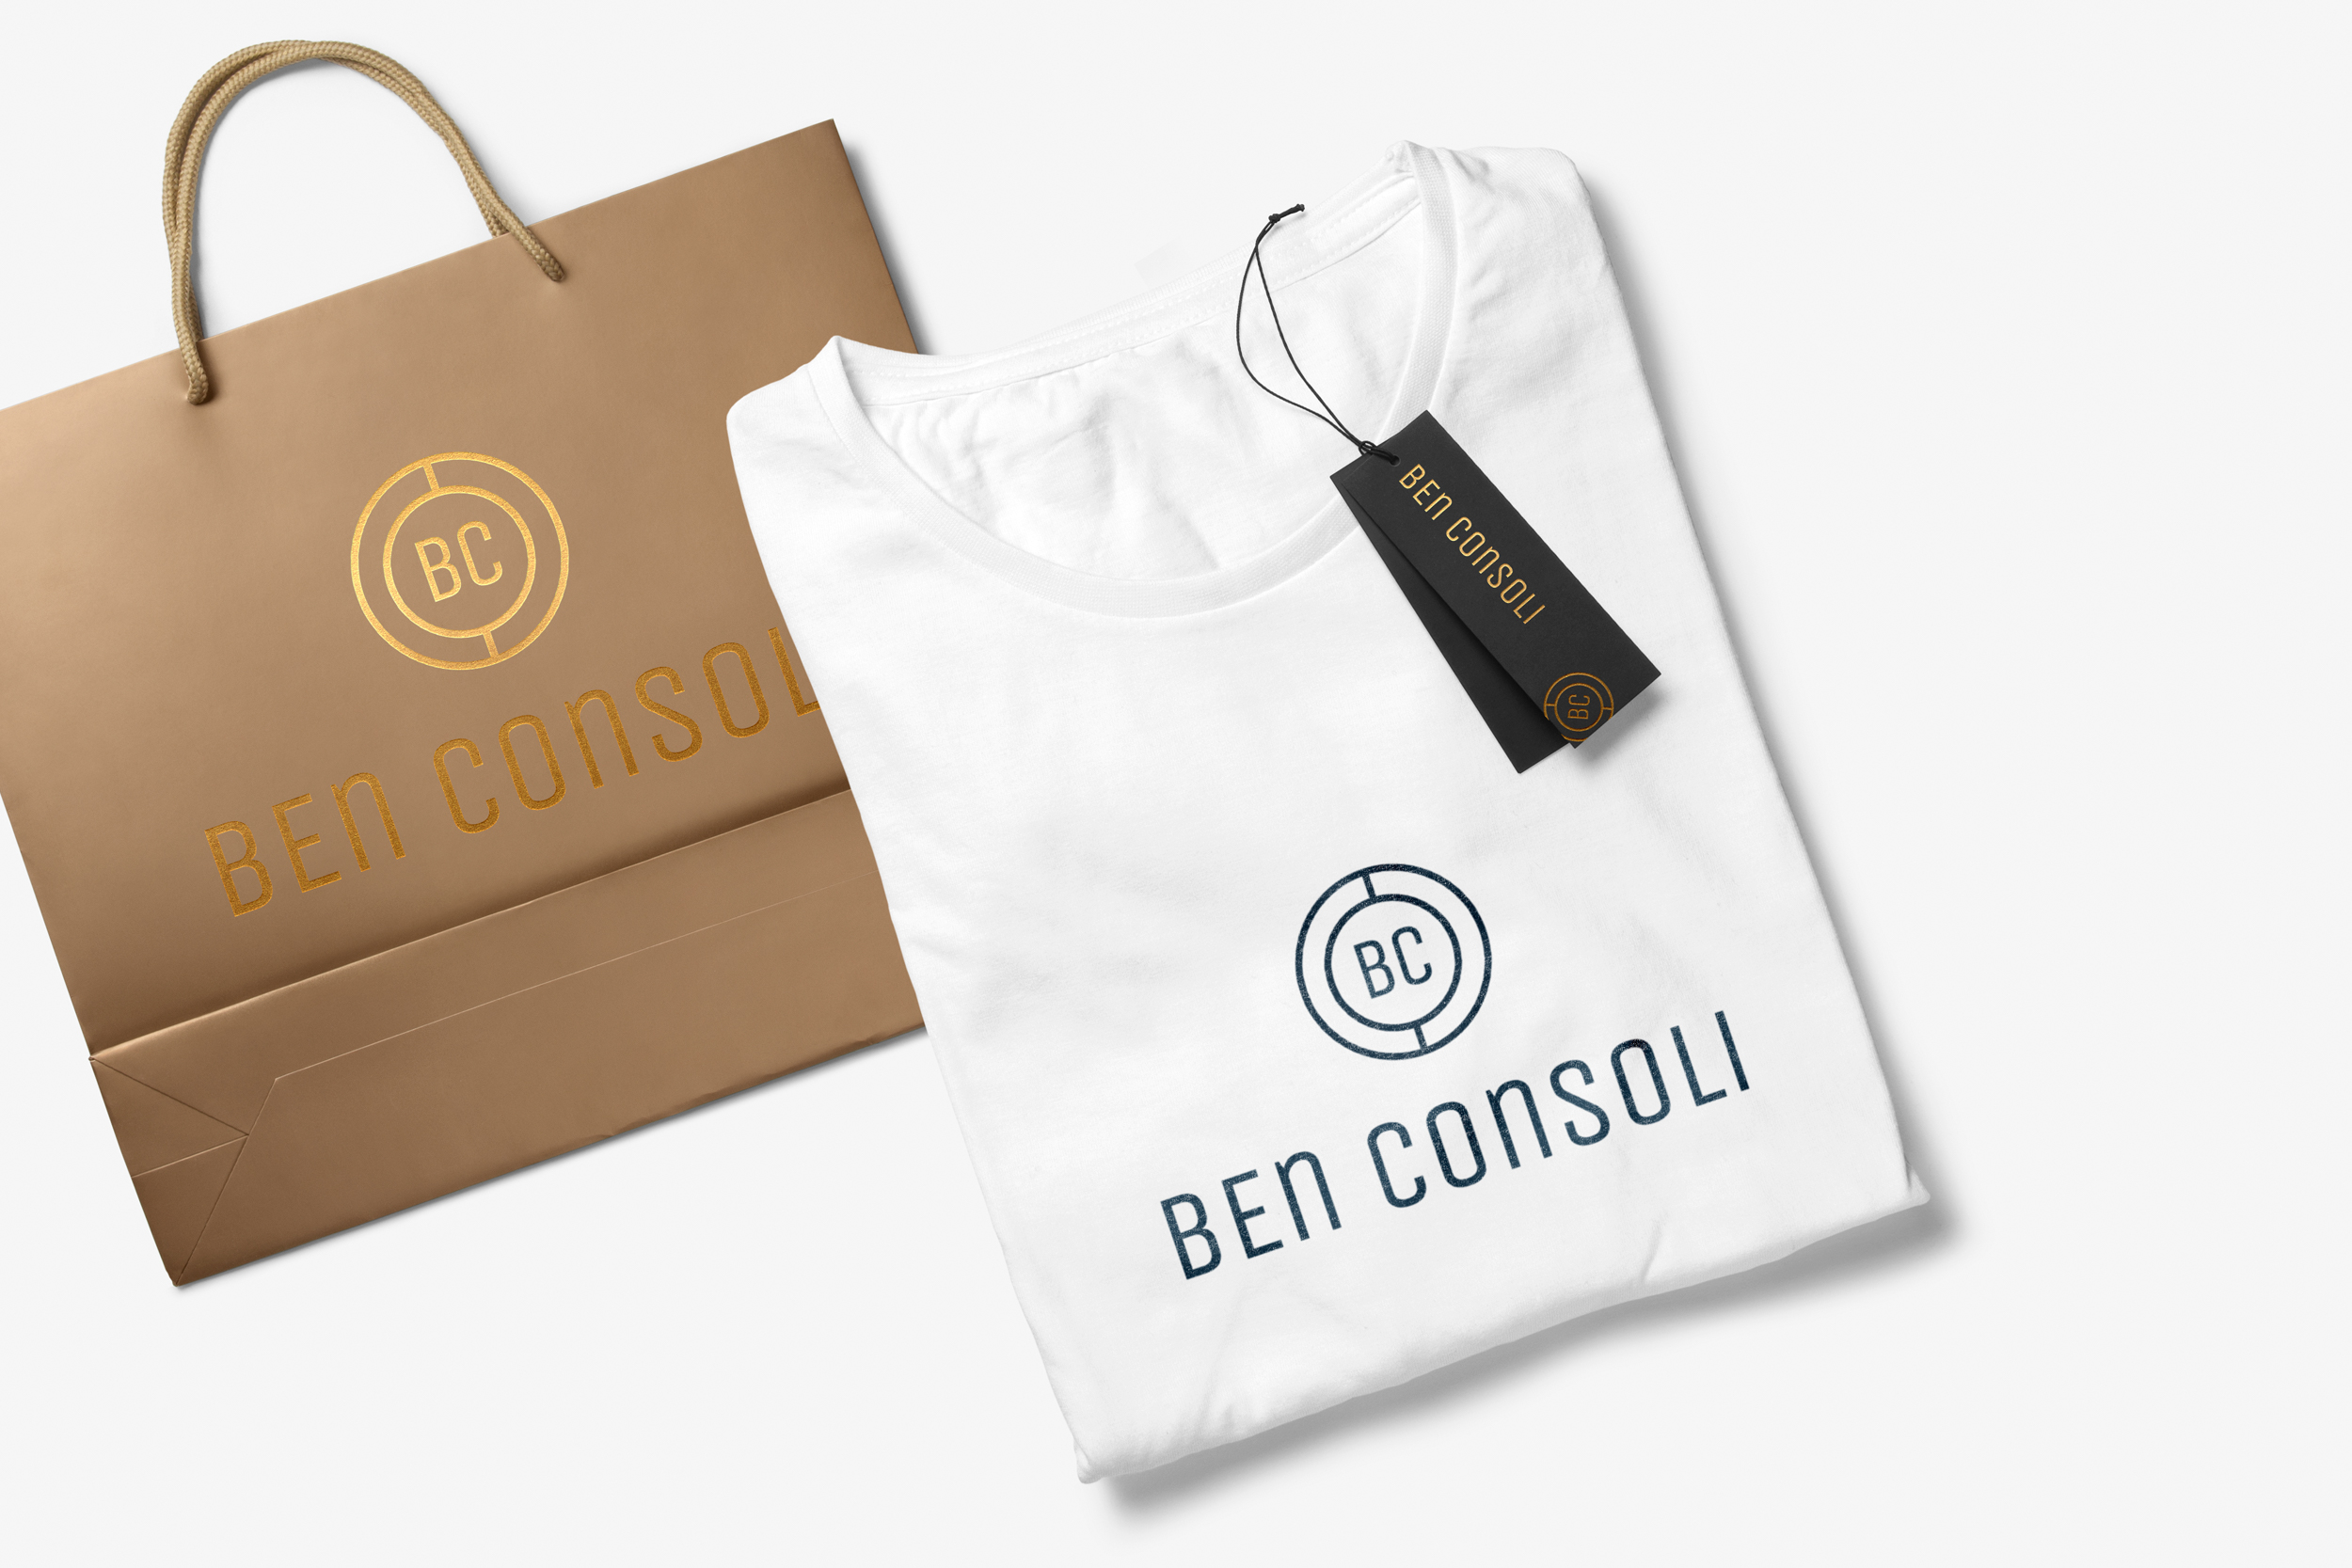 Shopping bad design and custom t-shirt design with label